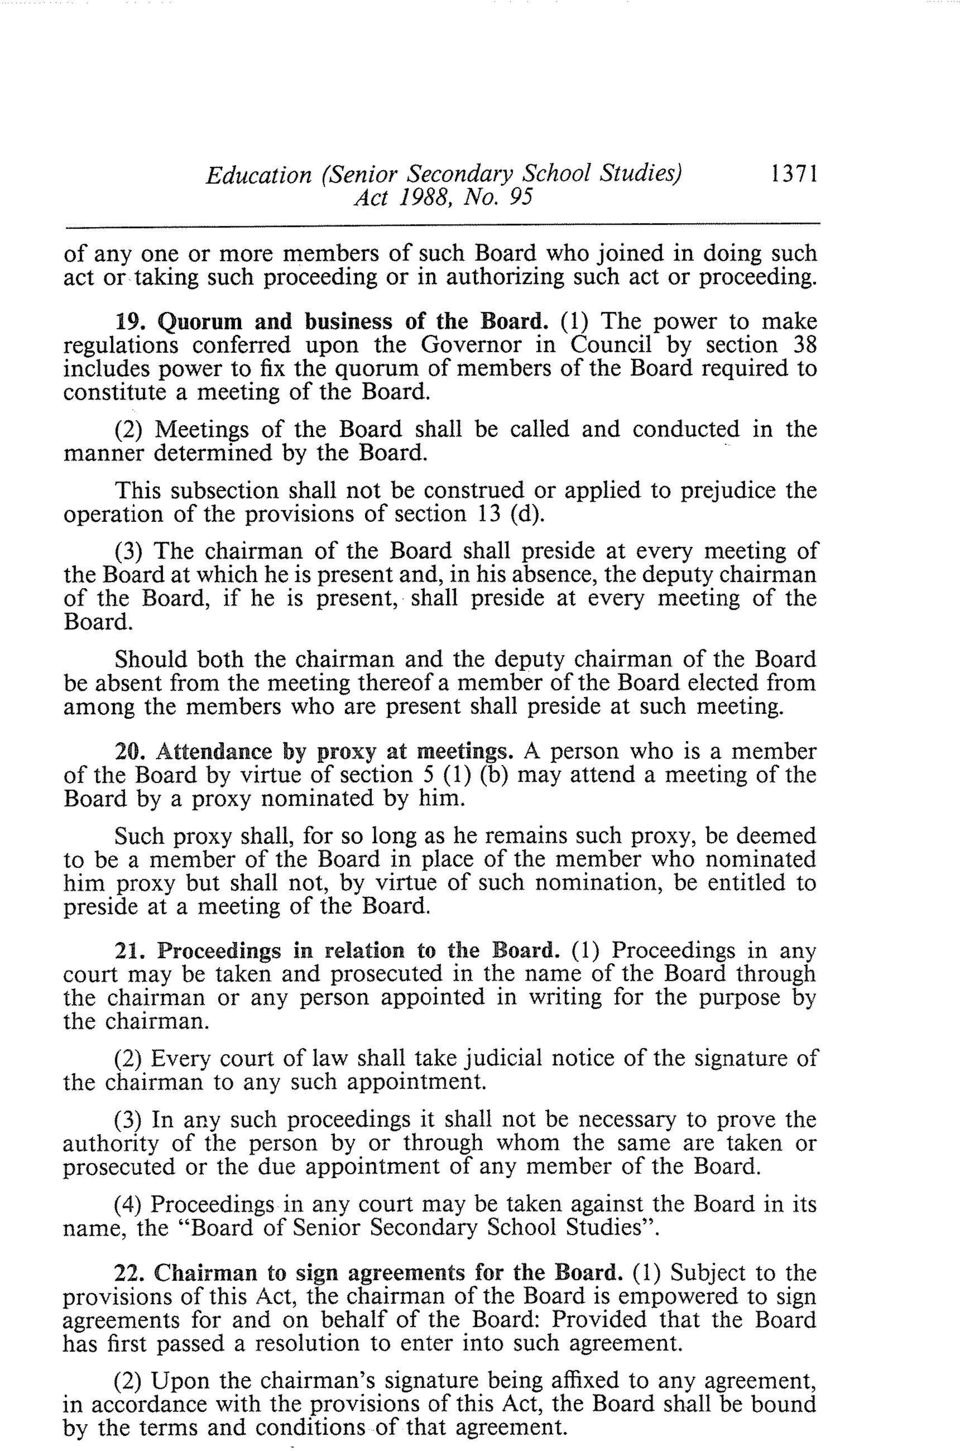 (1) The power to make regulations conferred upon the Governor in Council by section 38 includes power to fix the quorum of members of the Board required to constitute a meeting of the Board.